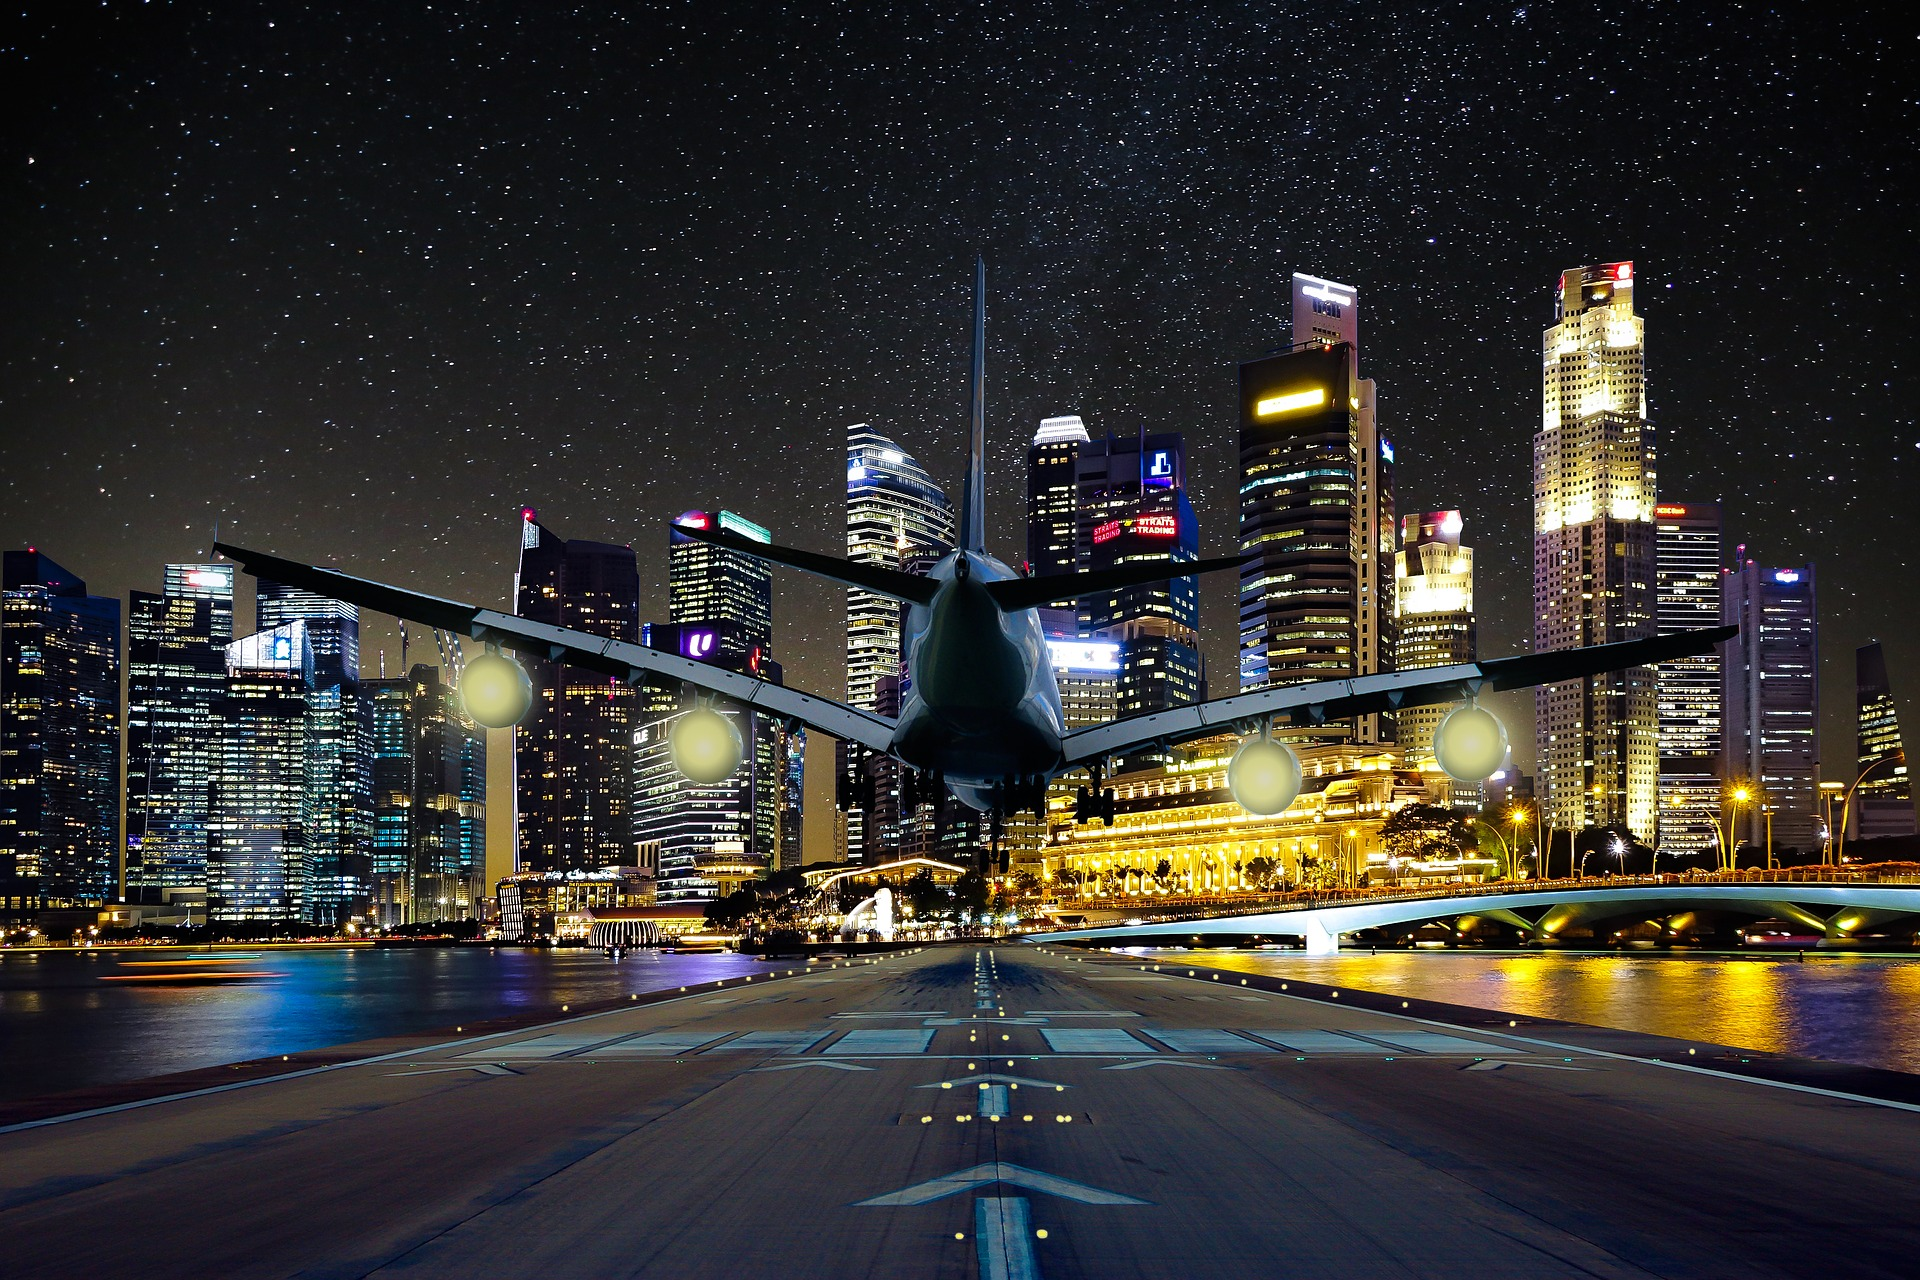 Image of an airplane with a city backdrop